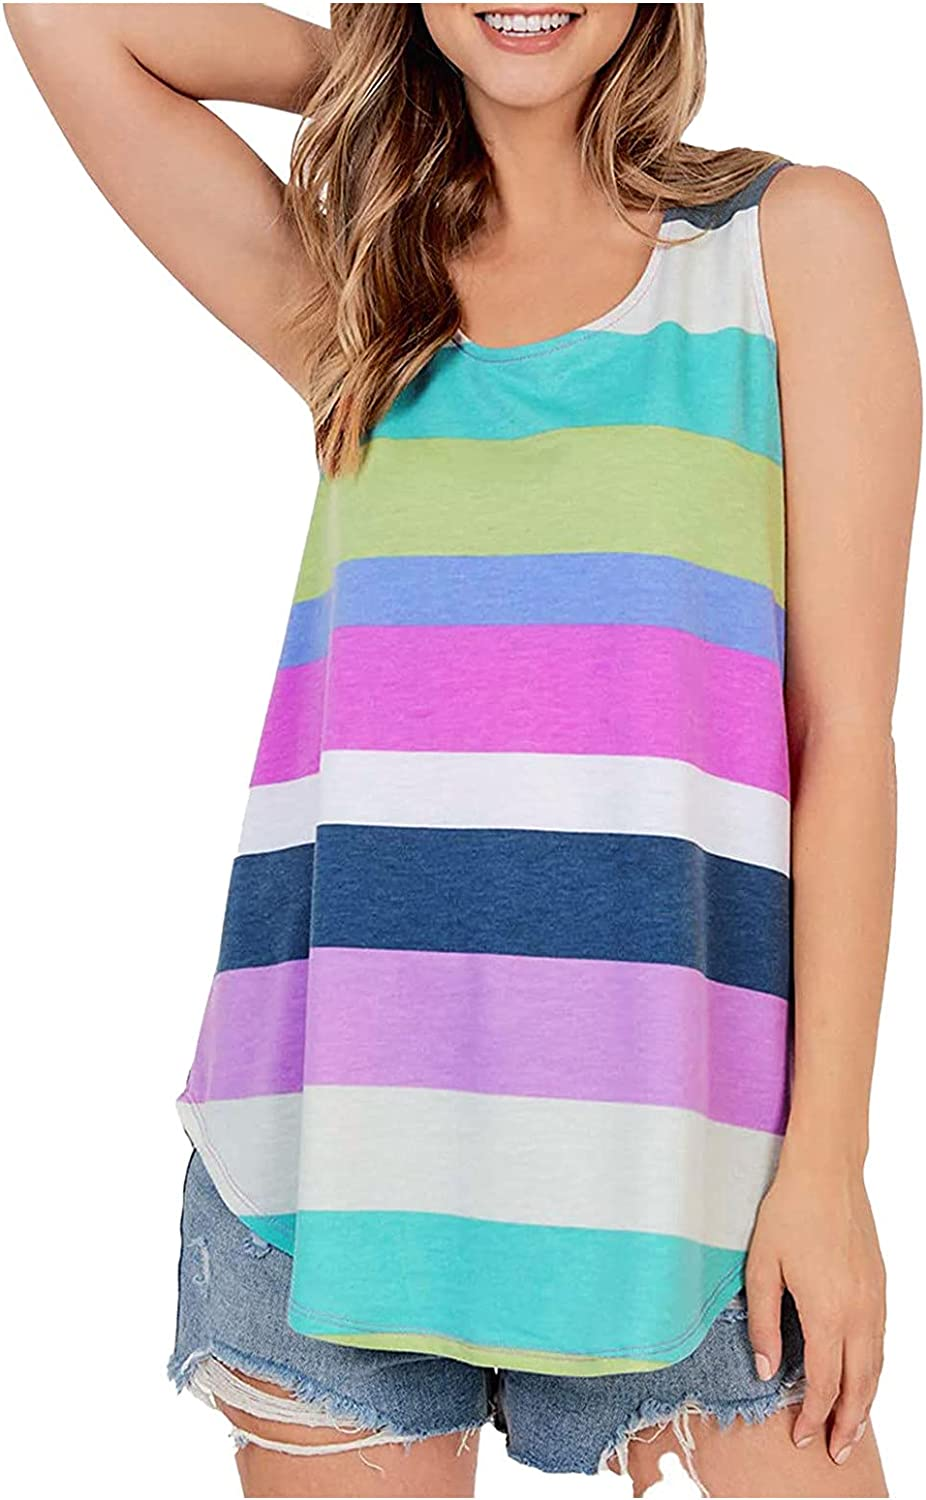 Daring Z Women's 70% OFF Outlet online shop Summer O-Neck Solid Color Tank Tops Sleeveless